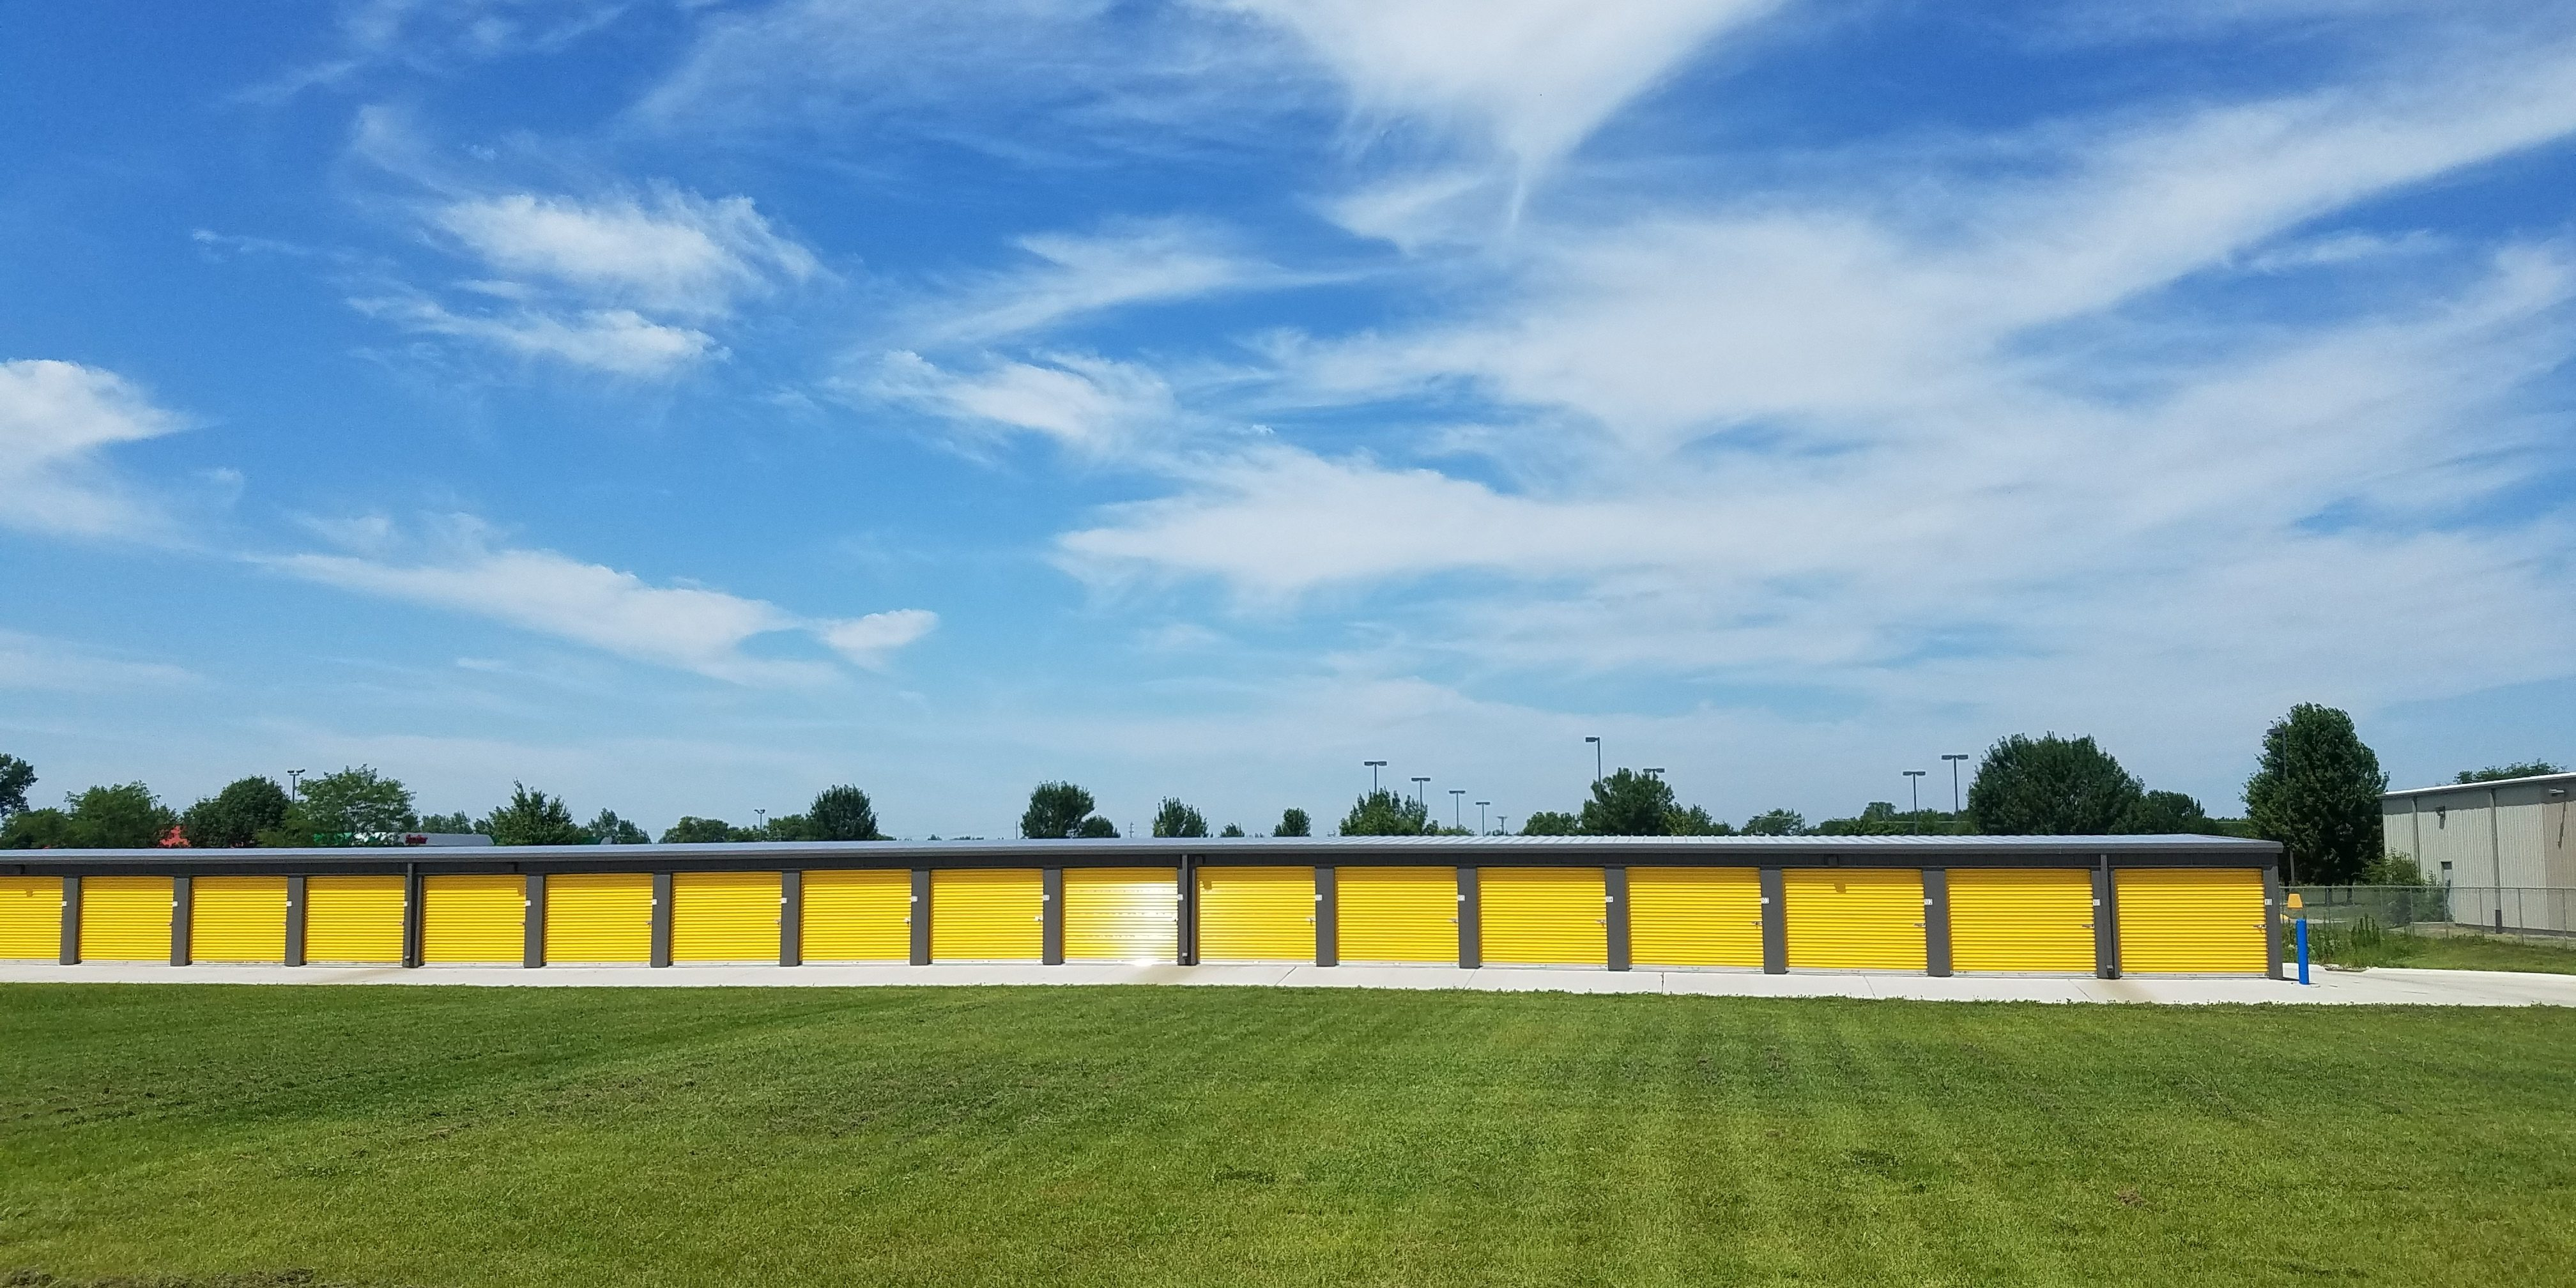 Exceptionnel Self Storage Available Land At Vu0027s Self Storage In Iowa City